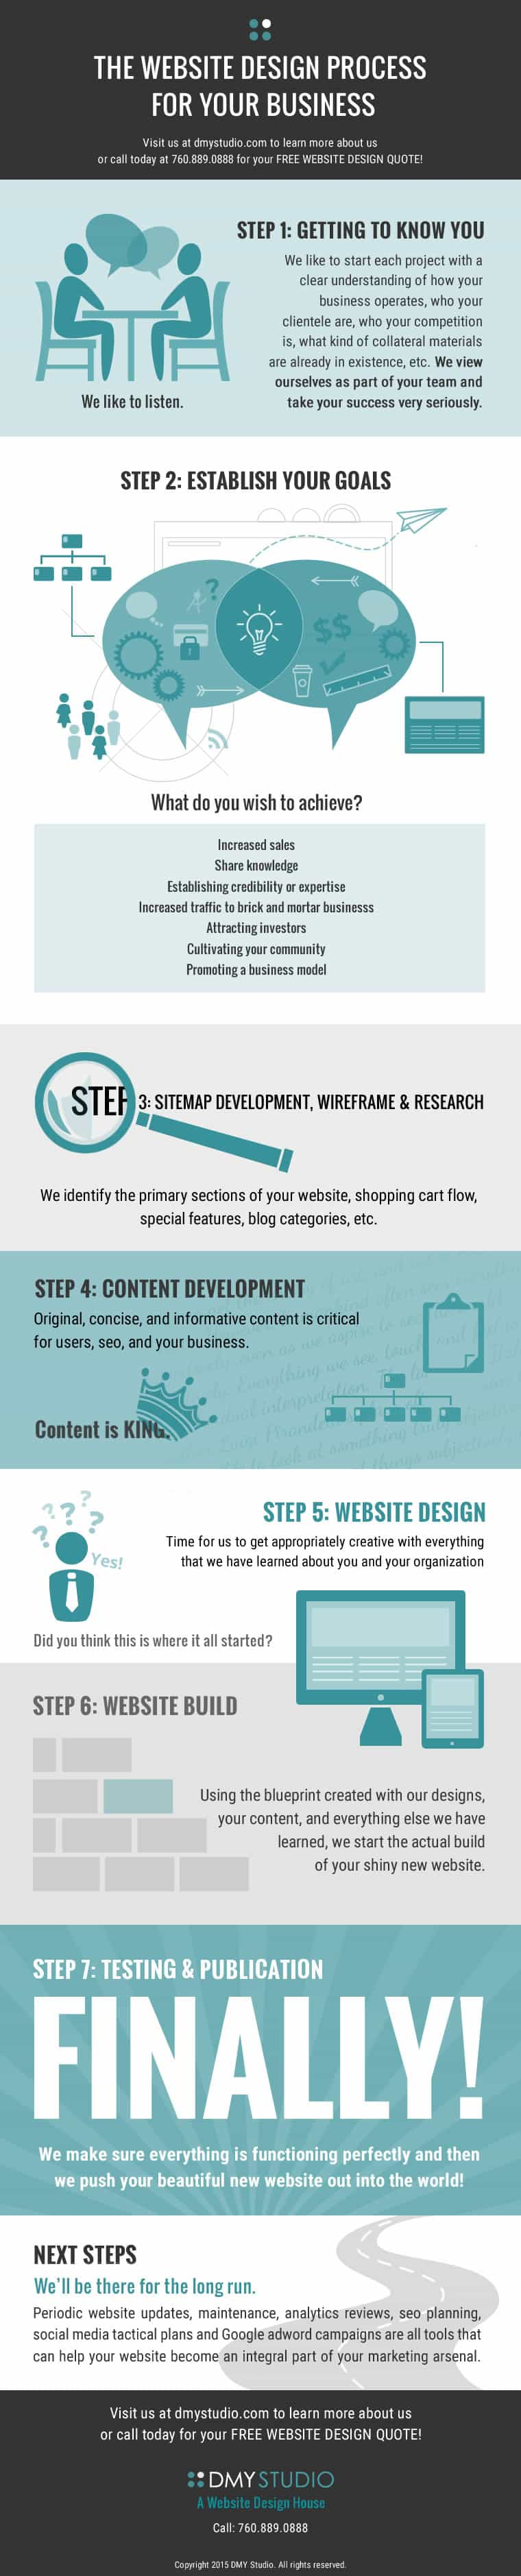 Website-Design-Process